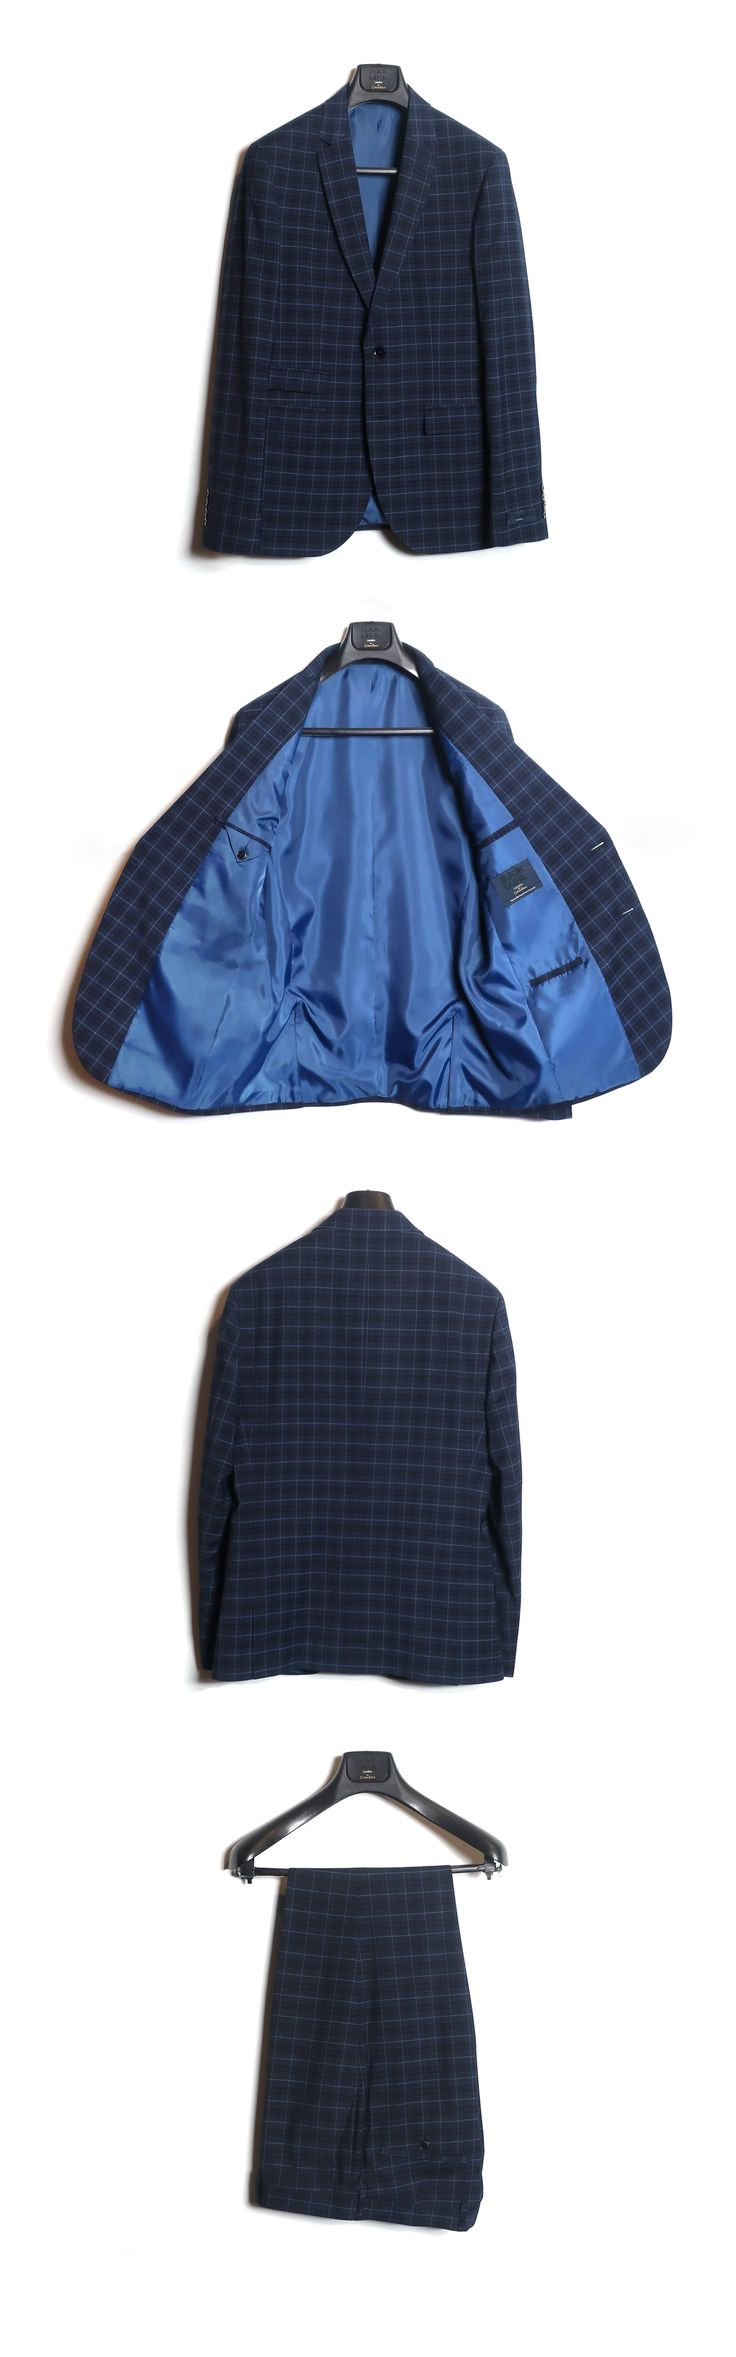 CH-986 BLUE CHECK SUIT 80%POLYESTER 20%VISCOSE